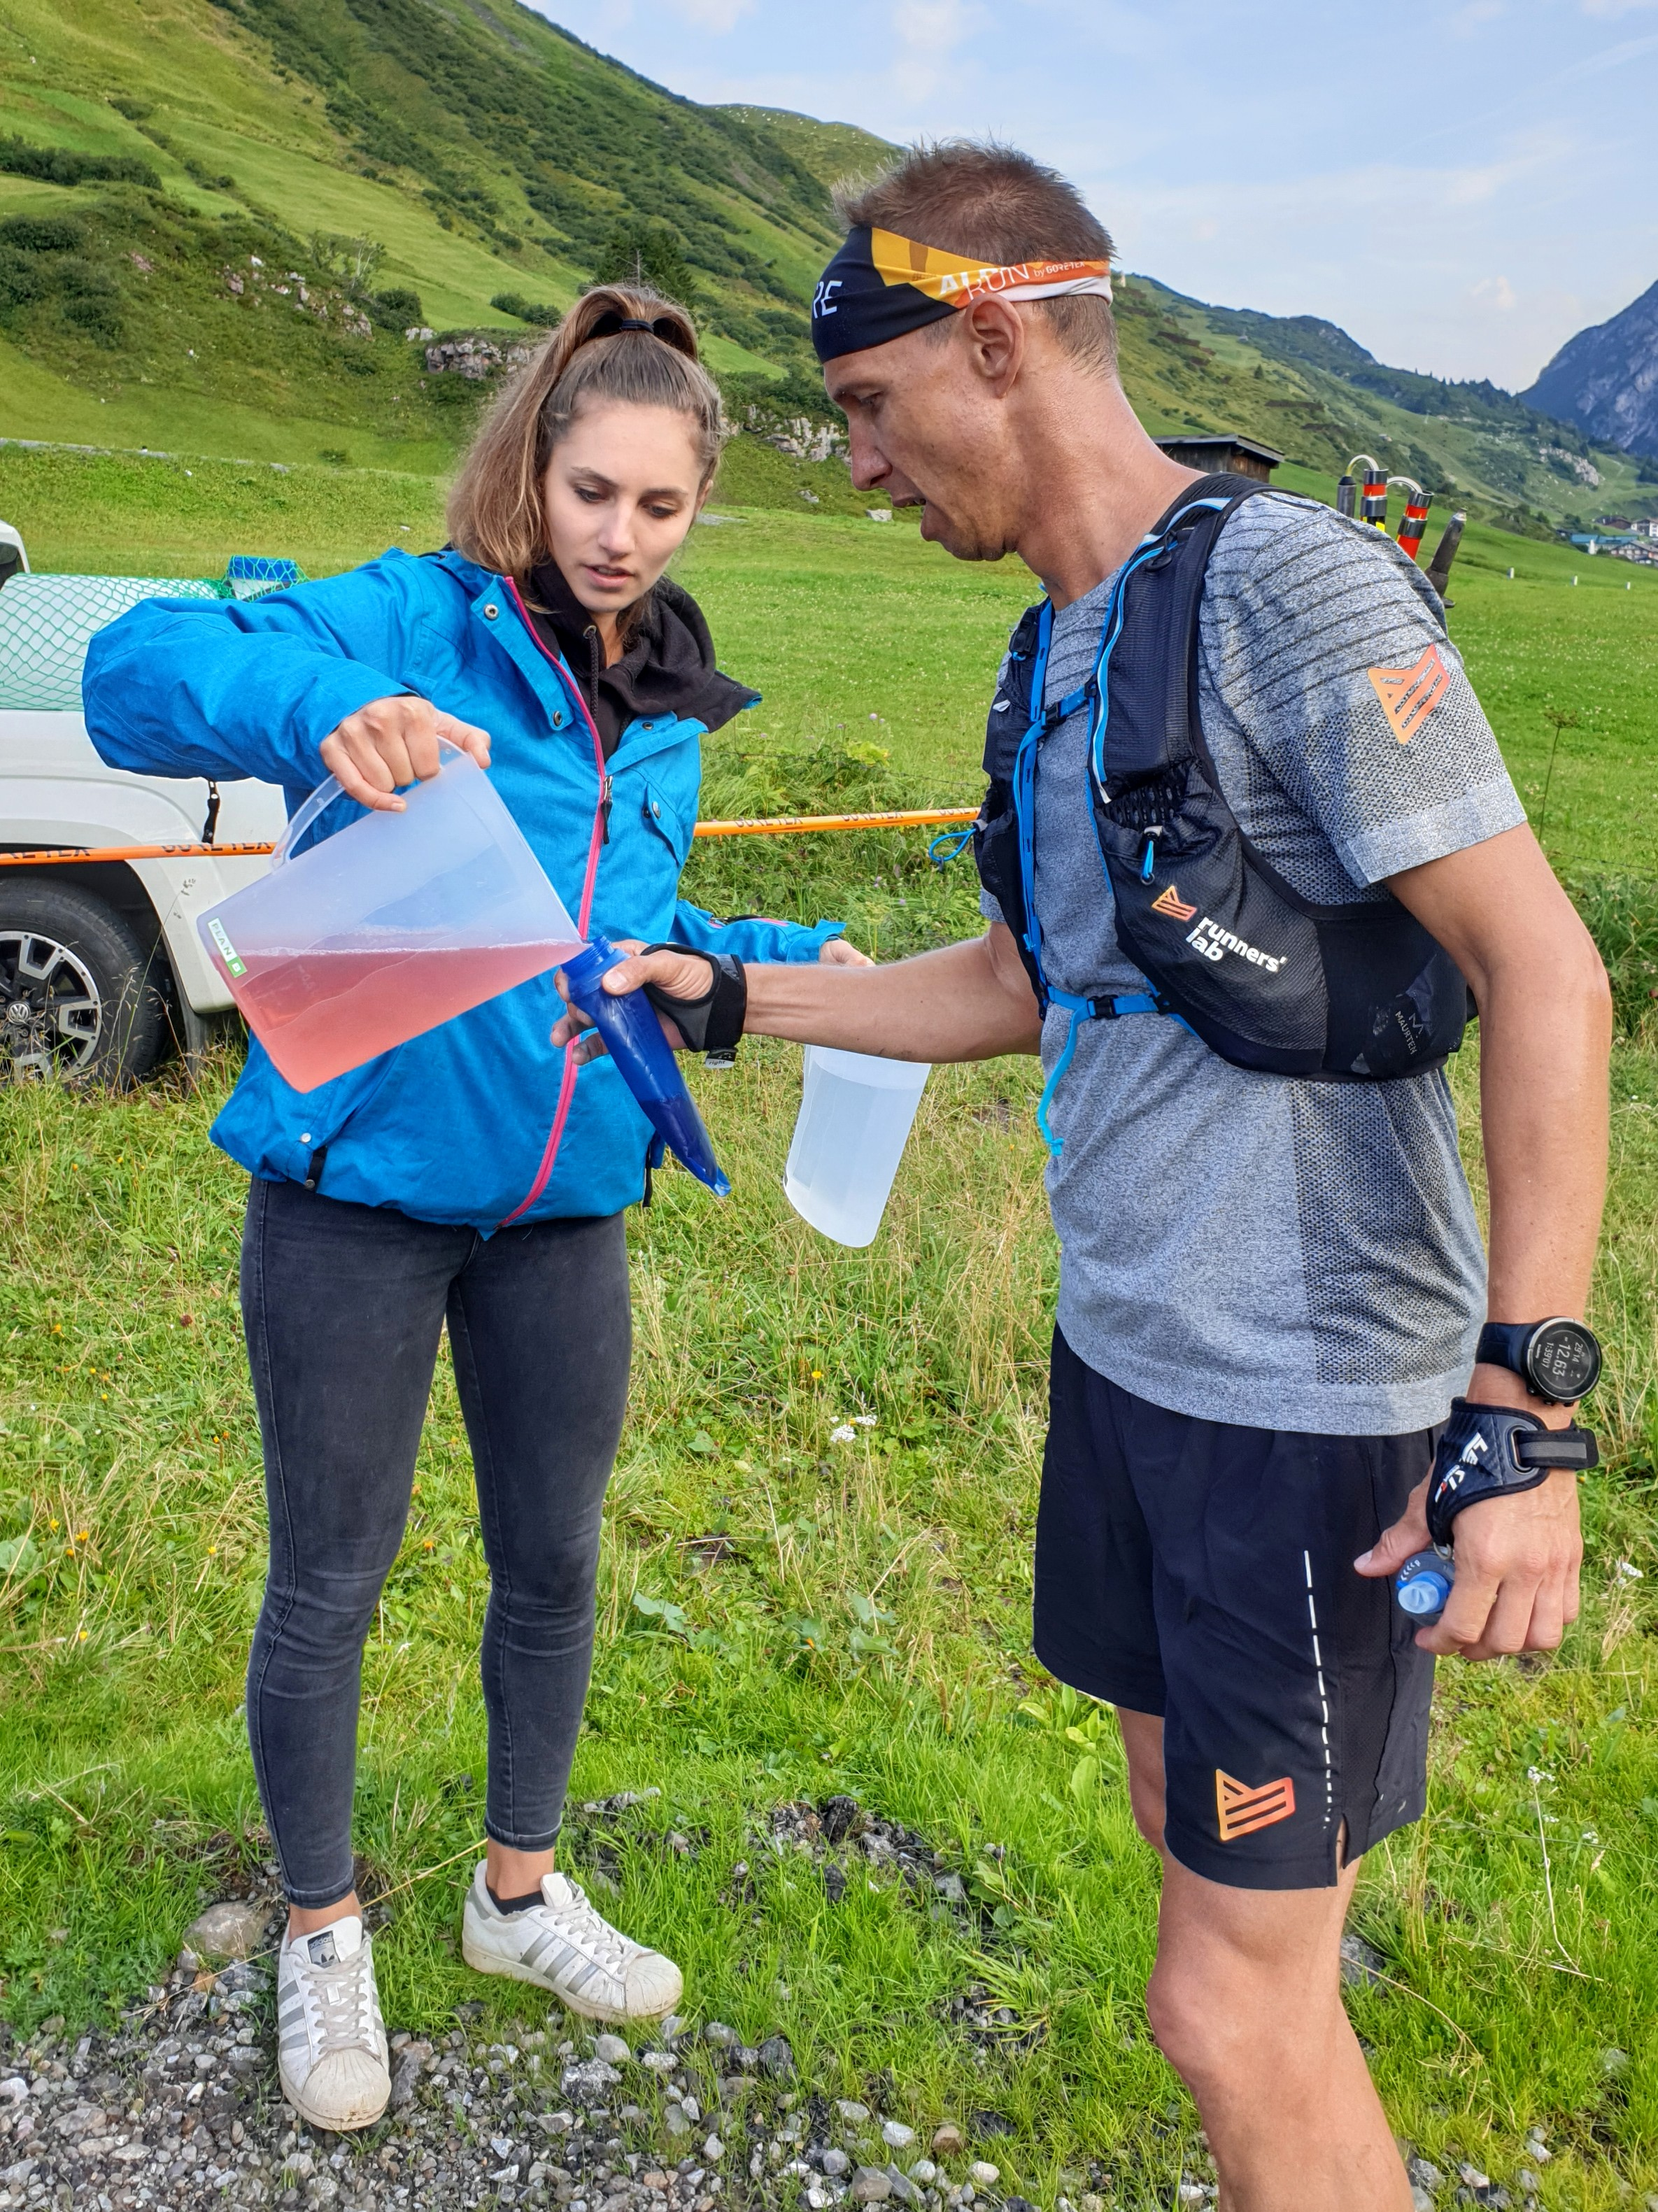 team_runners_lab_transalpine_run_2019_bevoorrading_hydratatie